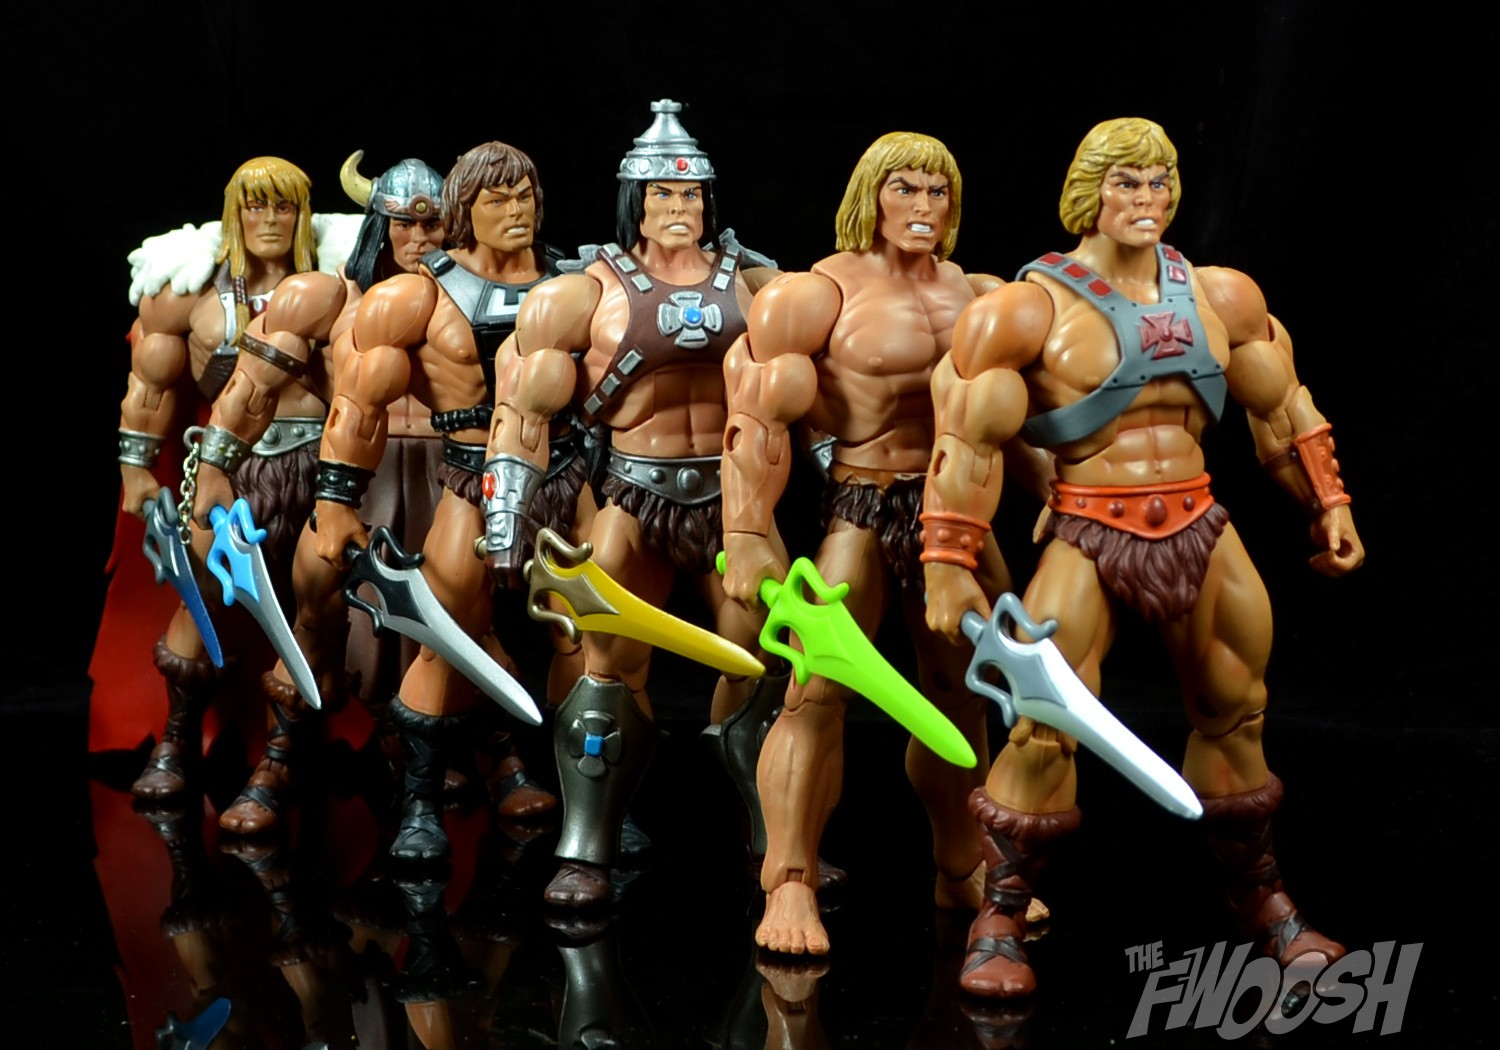 Masters of the universe naked